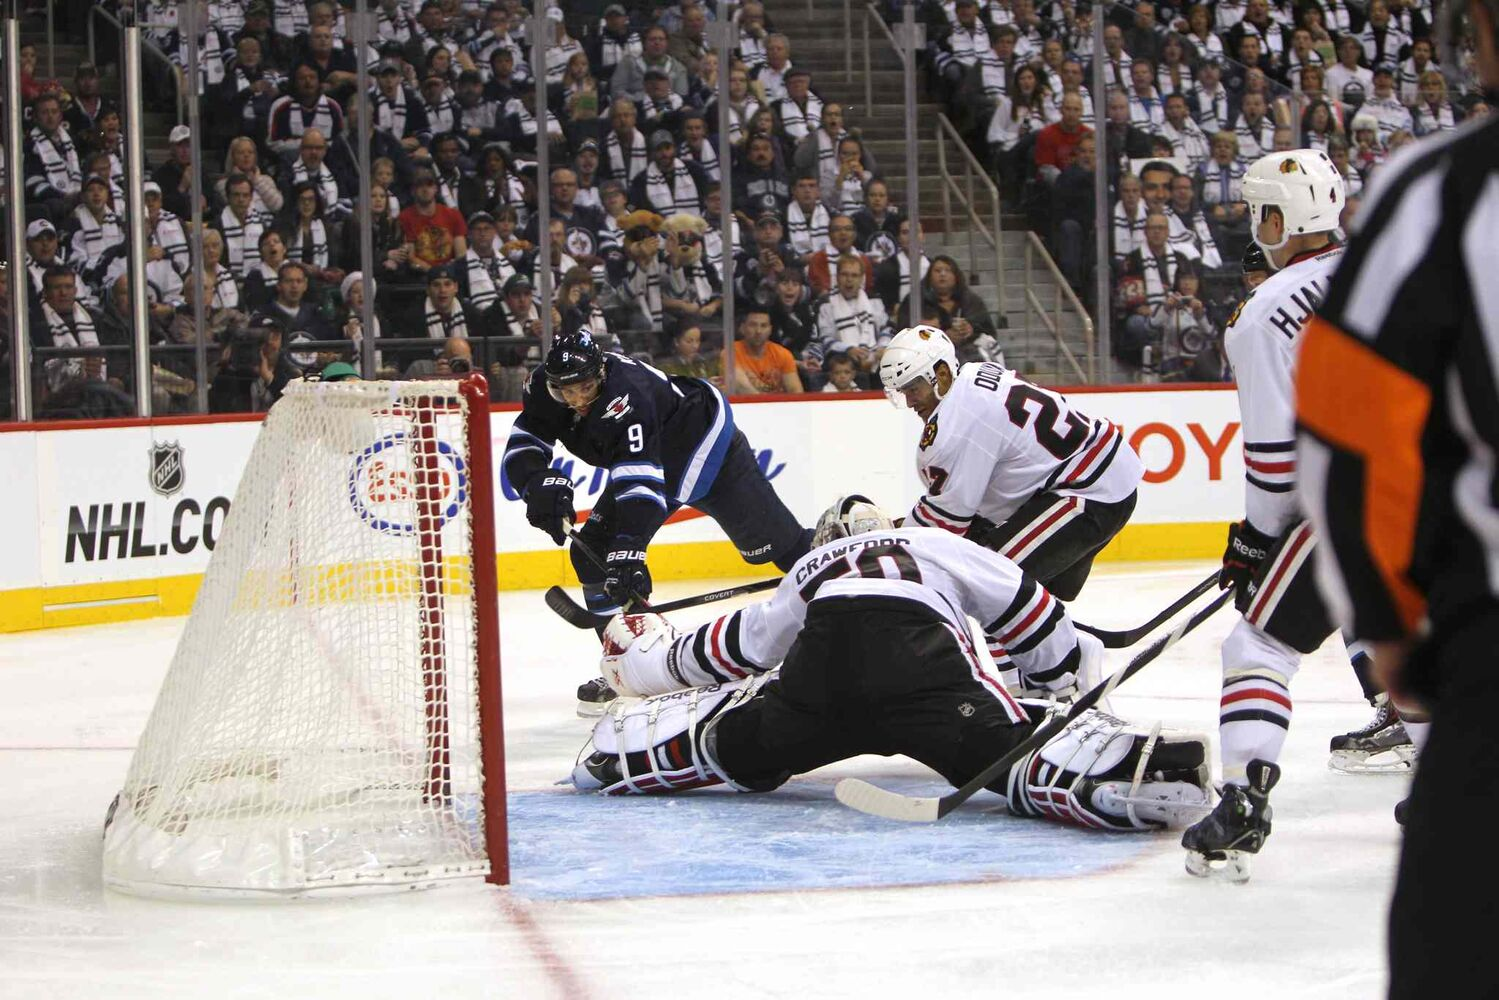 Evander Kane tries can't beat Blackhawks goaltender Corey Crawford during the second period. (Ruth Bonneville / Winnipeg Free Press)